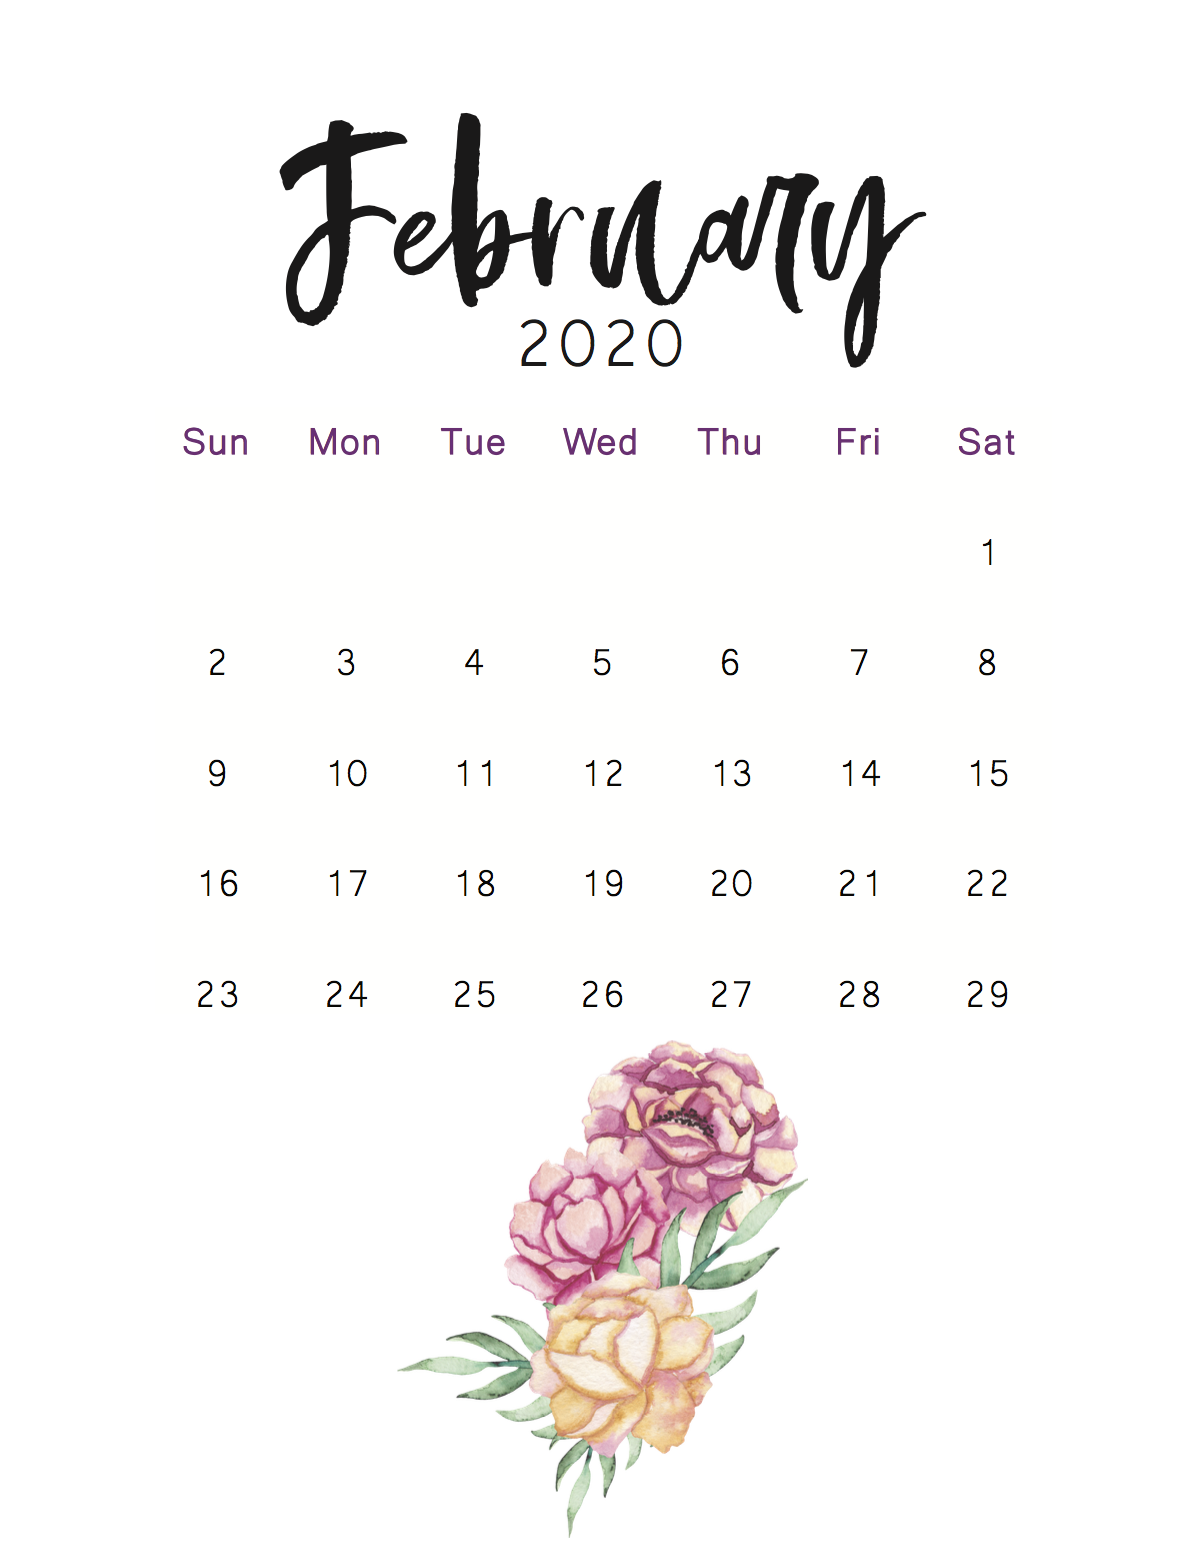 30 February 2020 Calendars for Home or Office   Onedesblog 1204x1560